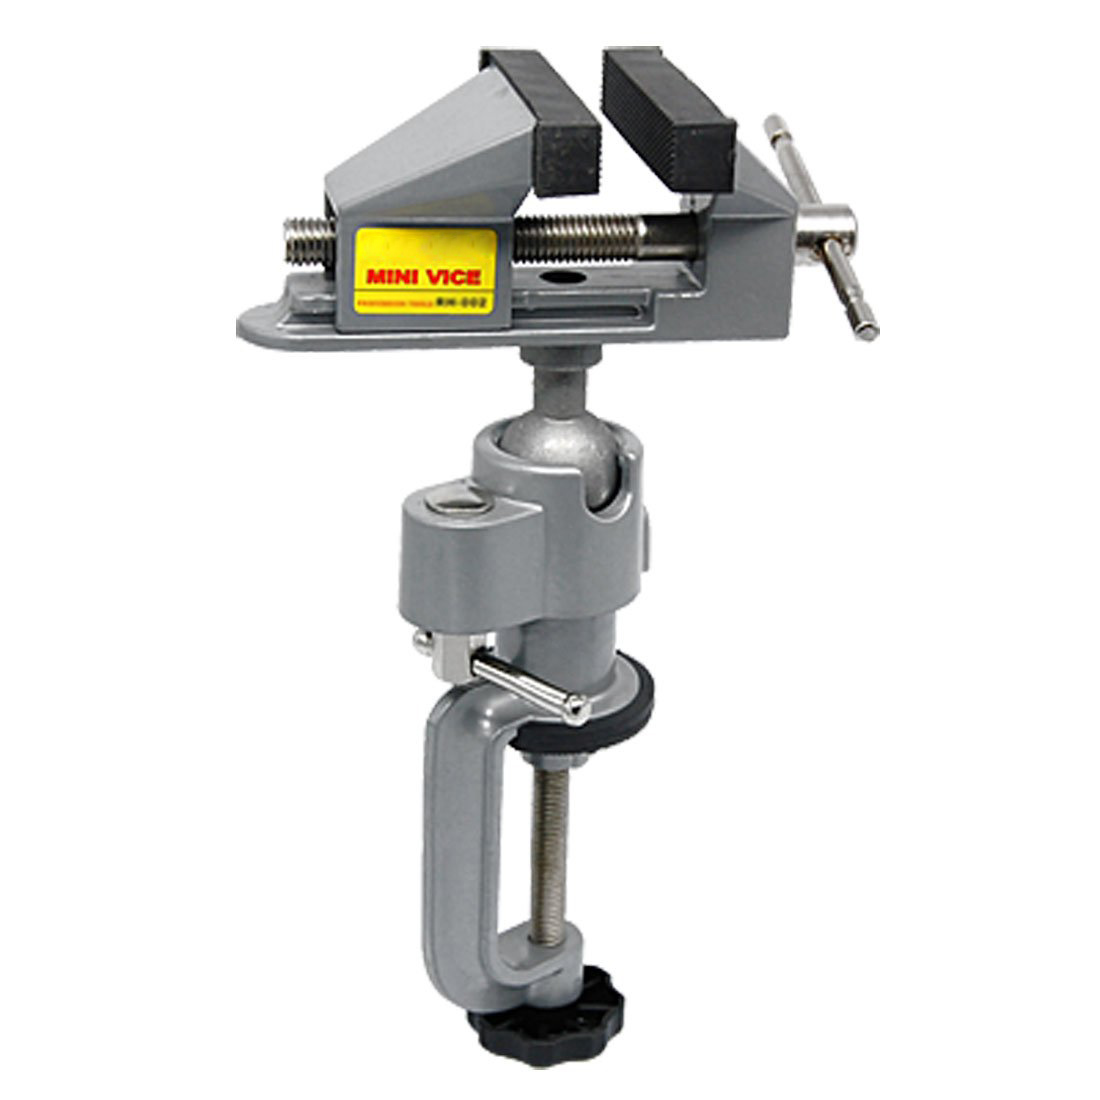 Table vise Bench Clamp Vises Grinder Holder Drill Stand for Rotary Tool,Craft,Model Building,Electronics,Hobby(China)